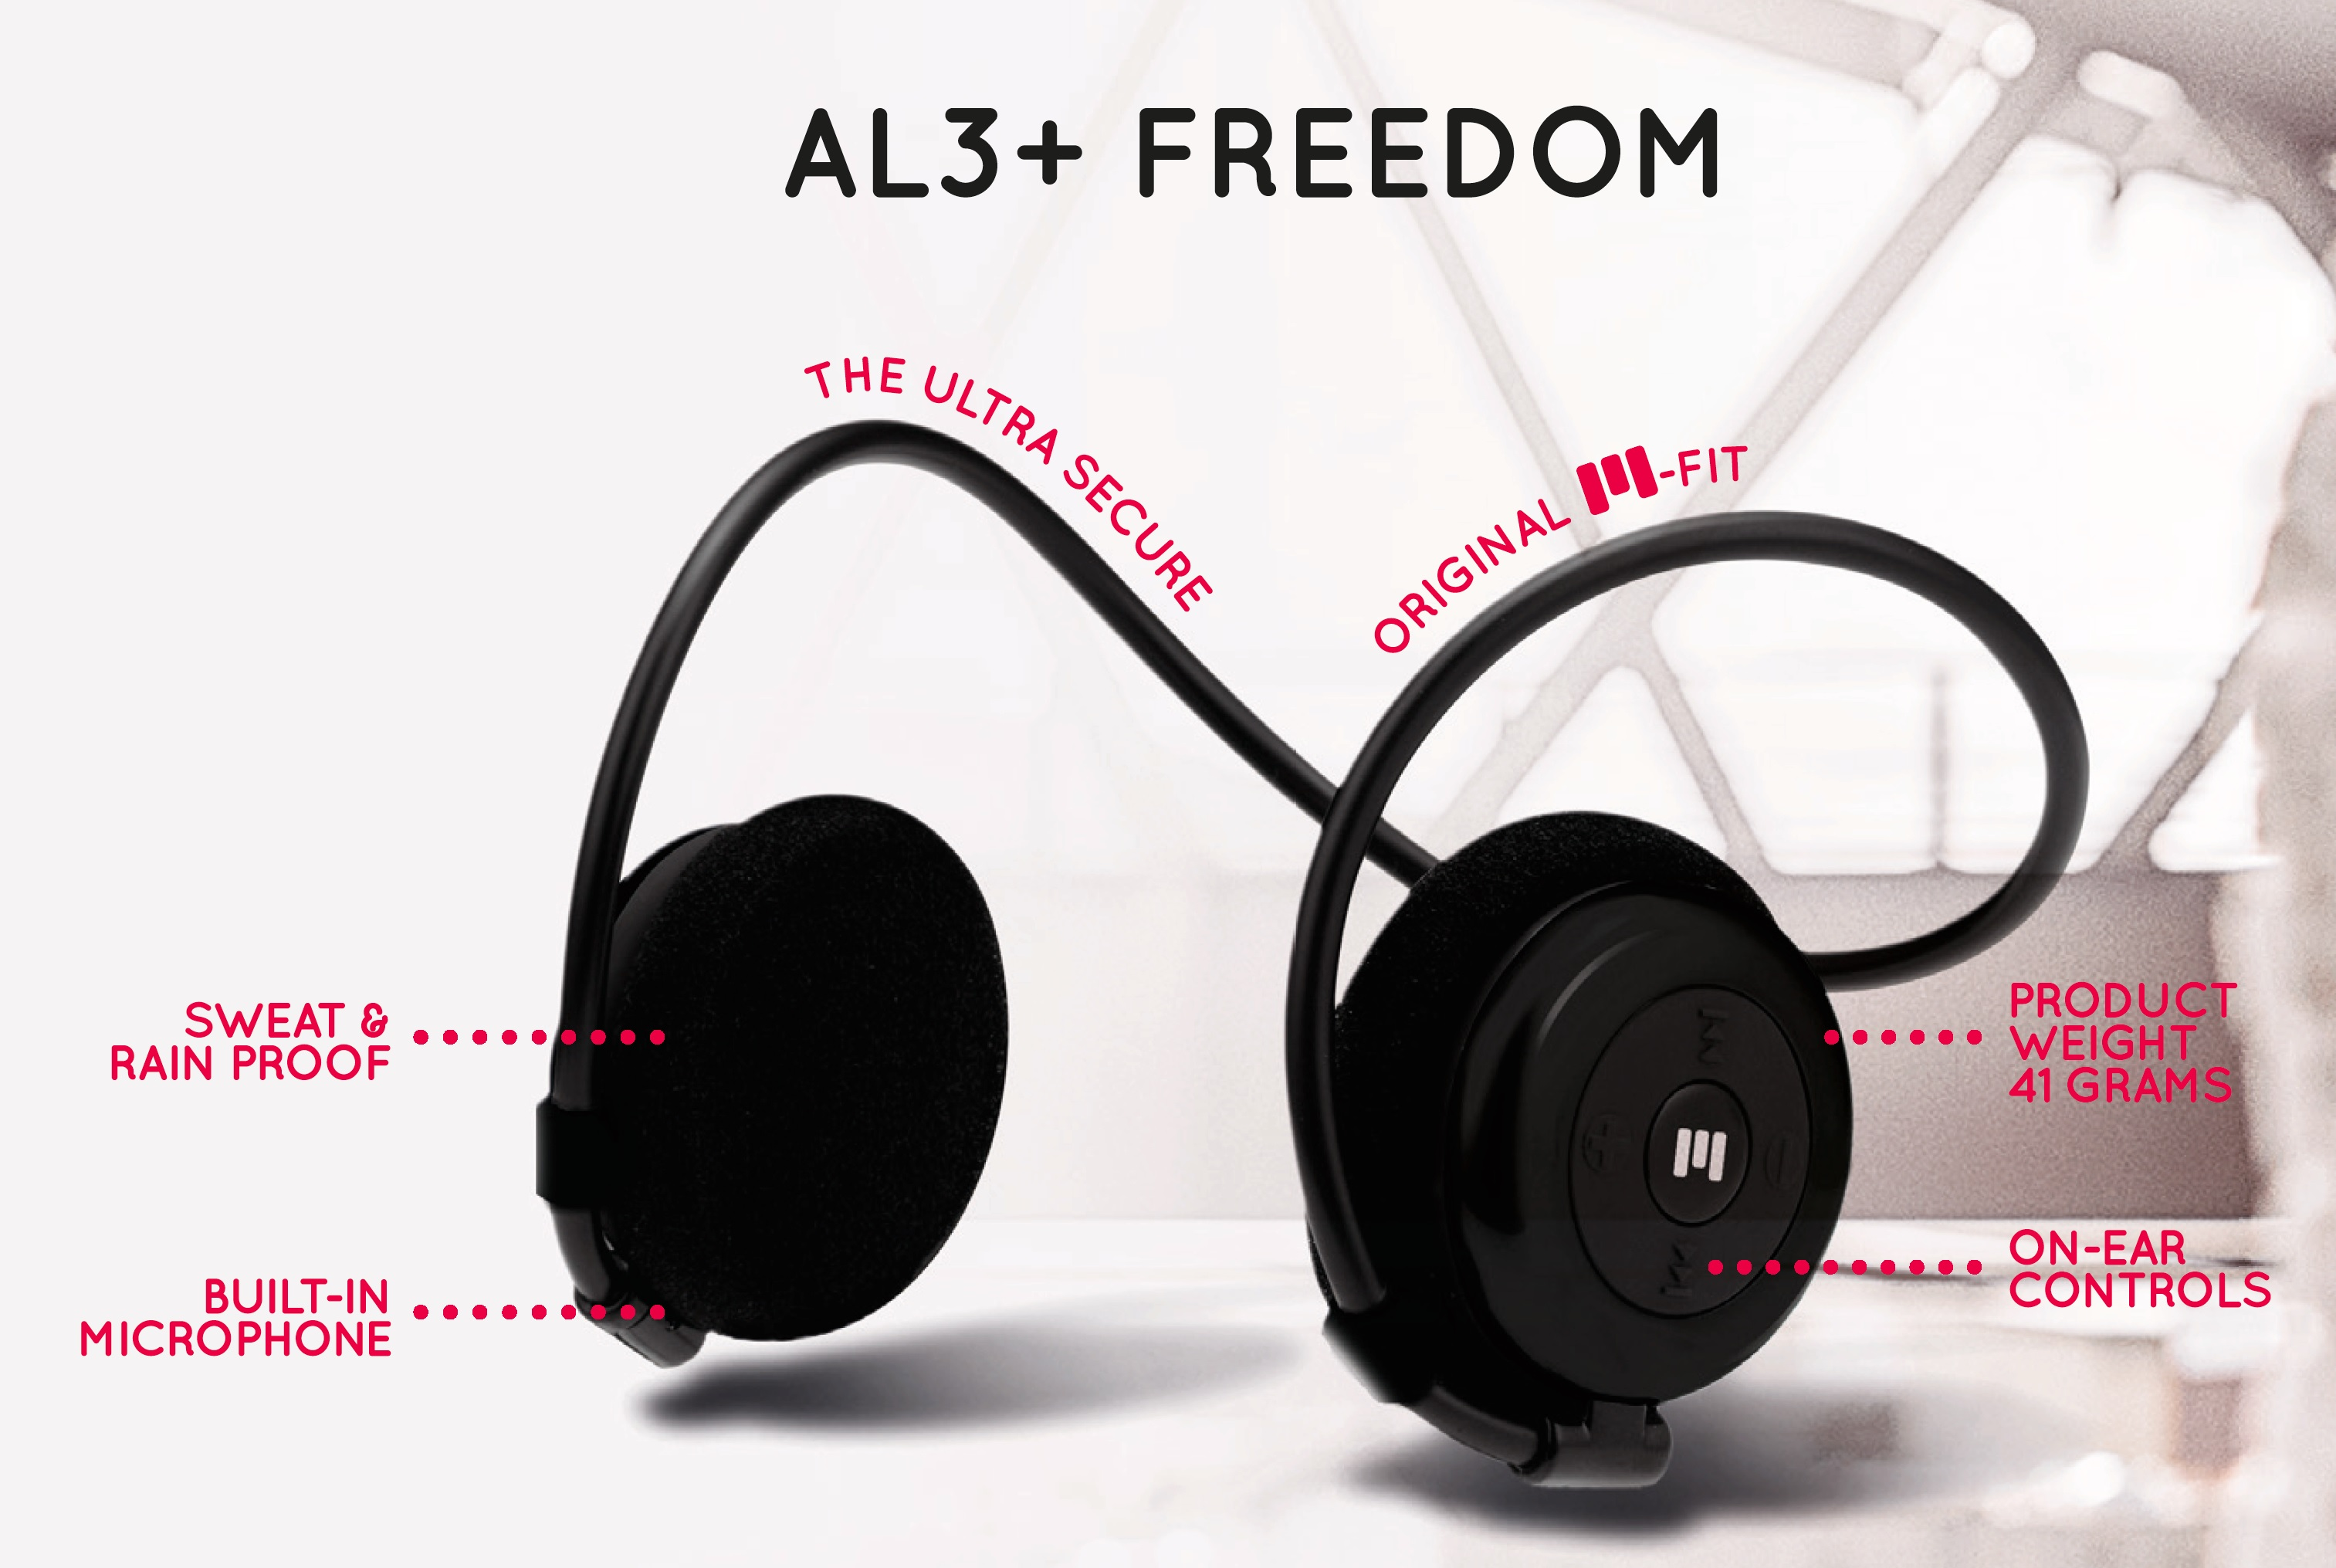 Miiego AL3+ freedom wireless headphones sweat and rain resistant